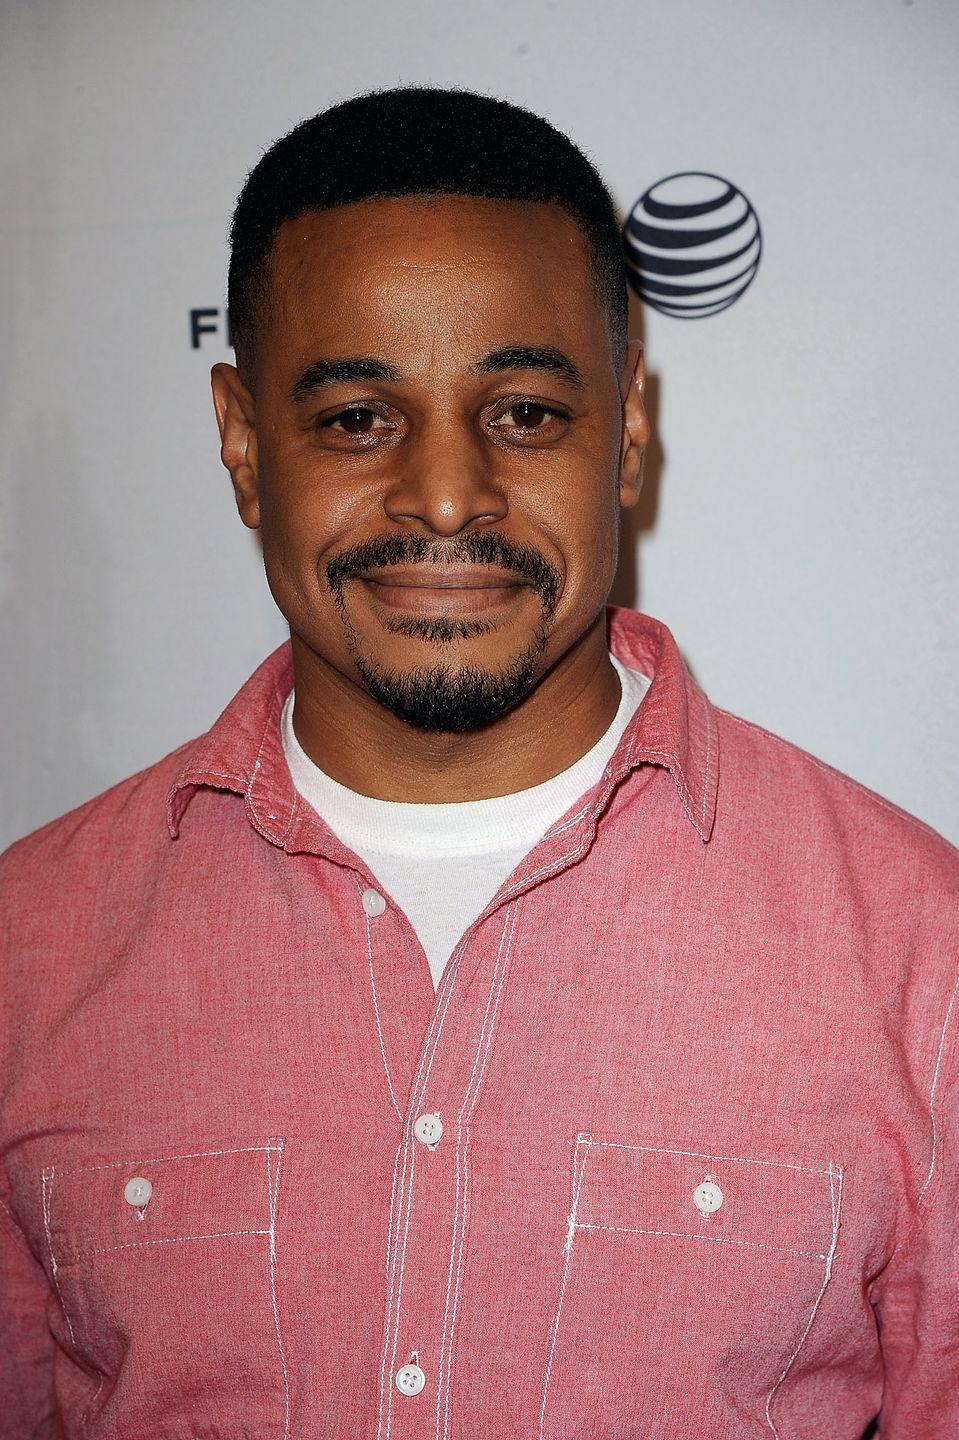 """<p>Since <em>The Wire</em>, Robinson has kept a relatively low profile. He appeared in <em>Unstoppable</em> (as a cop), <em>Boardwalk Empire</em>, and his most recent role was as Agent Taylor in <em>The Neighborhood</em> in 2018. Robinson currently works behind the scenes as a co-founder of <a href=""""https://www.instagram.com/daydreamfilms2k/?hl=en"""" rel=""""nofollow noopener"""" target=""""_blank"""" data-ylk=""""slk:Daydream Films"""" class=""""link rapid-noclick-resp"""">Daydream Films</a>.</p>"""